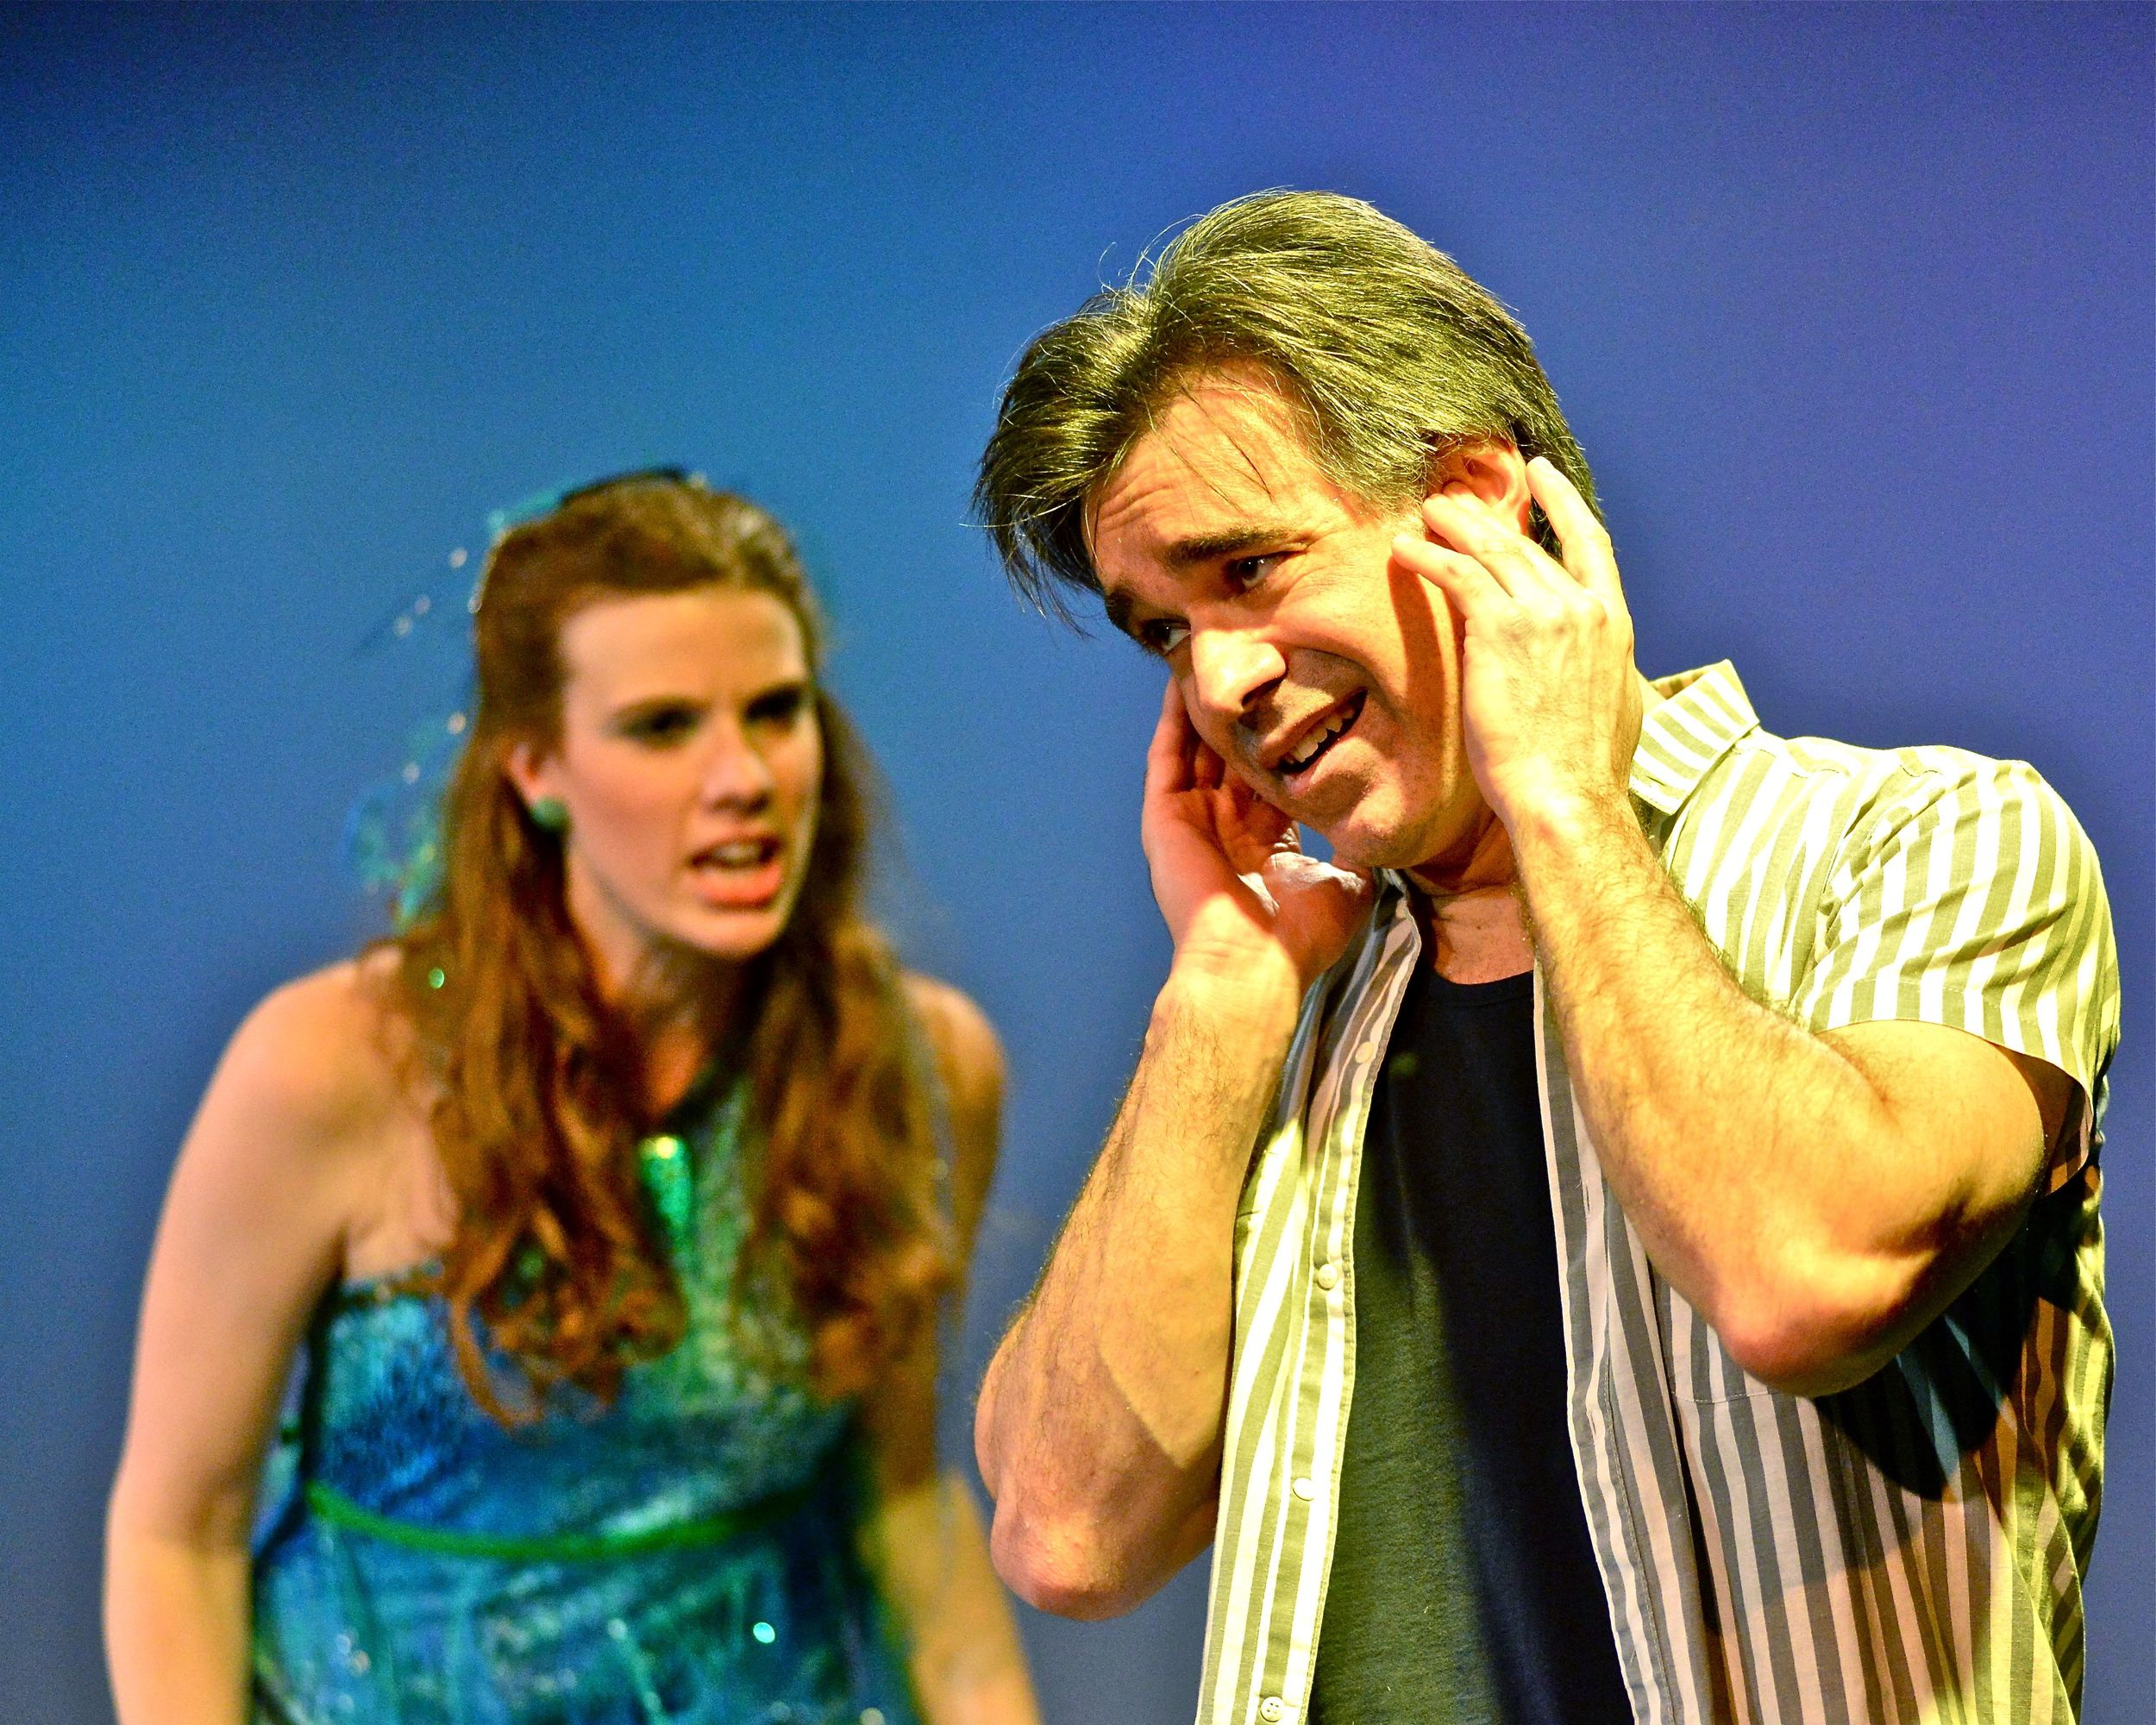 Sirens_March12_Rehearsal - 05.jpg